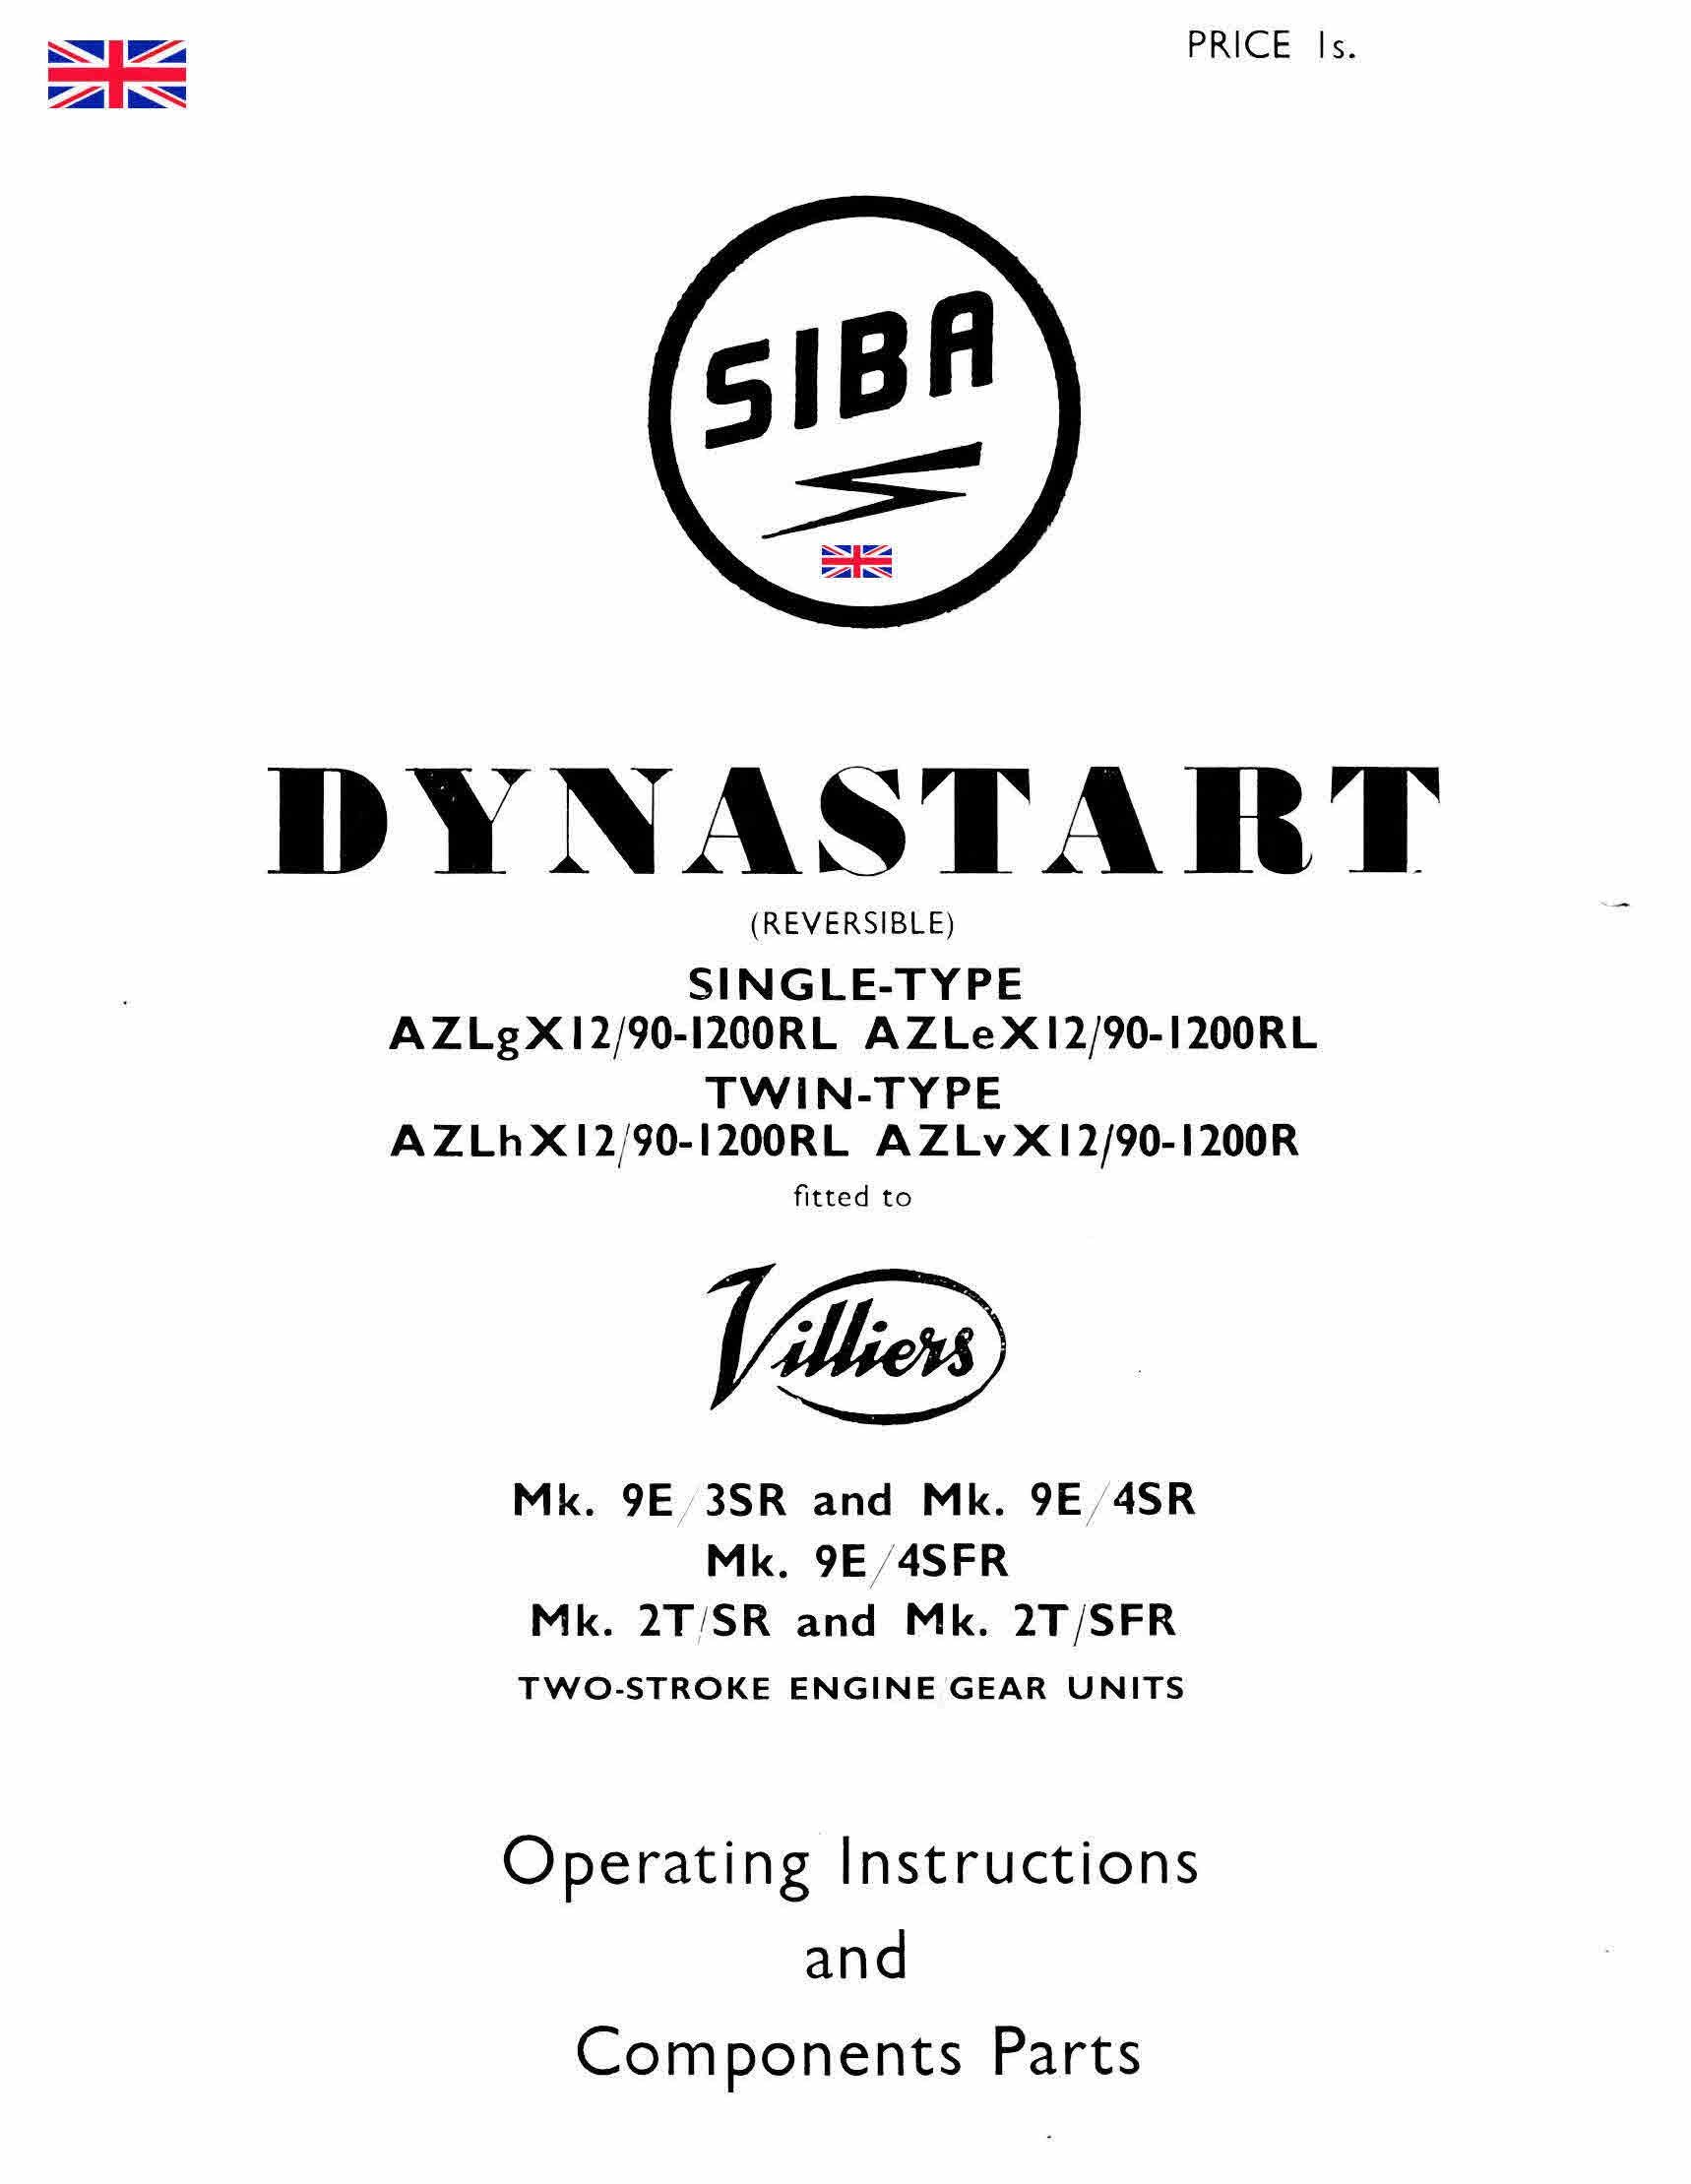 Villiers Siba Dynastart Manuals For Mechanics Pinterest Vintage New Holland Lawn Tractor Wiring Diagram Instructions And Parts Manualvarious Diagramsfor Bosch Diagramssome Compleet Some Experimentalall Very Usef